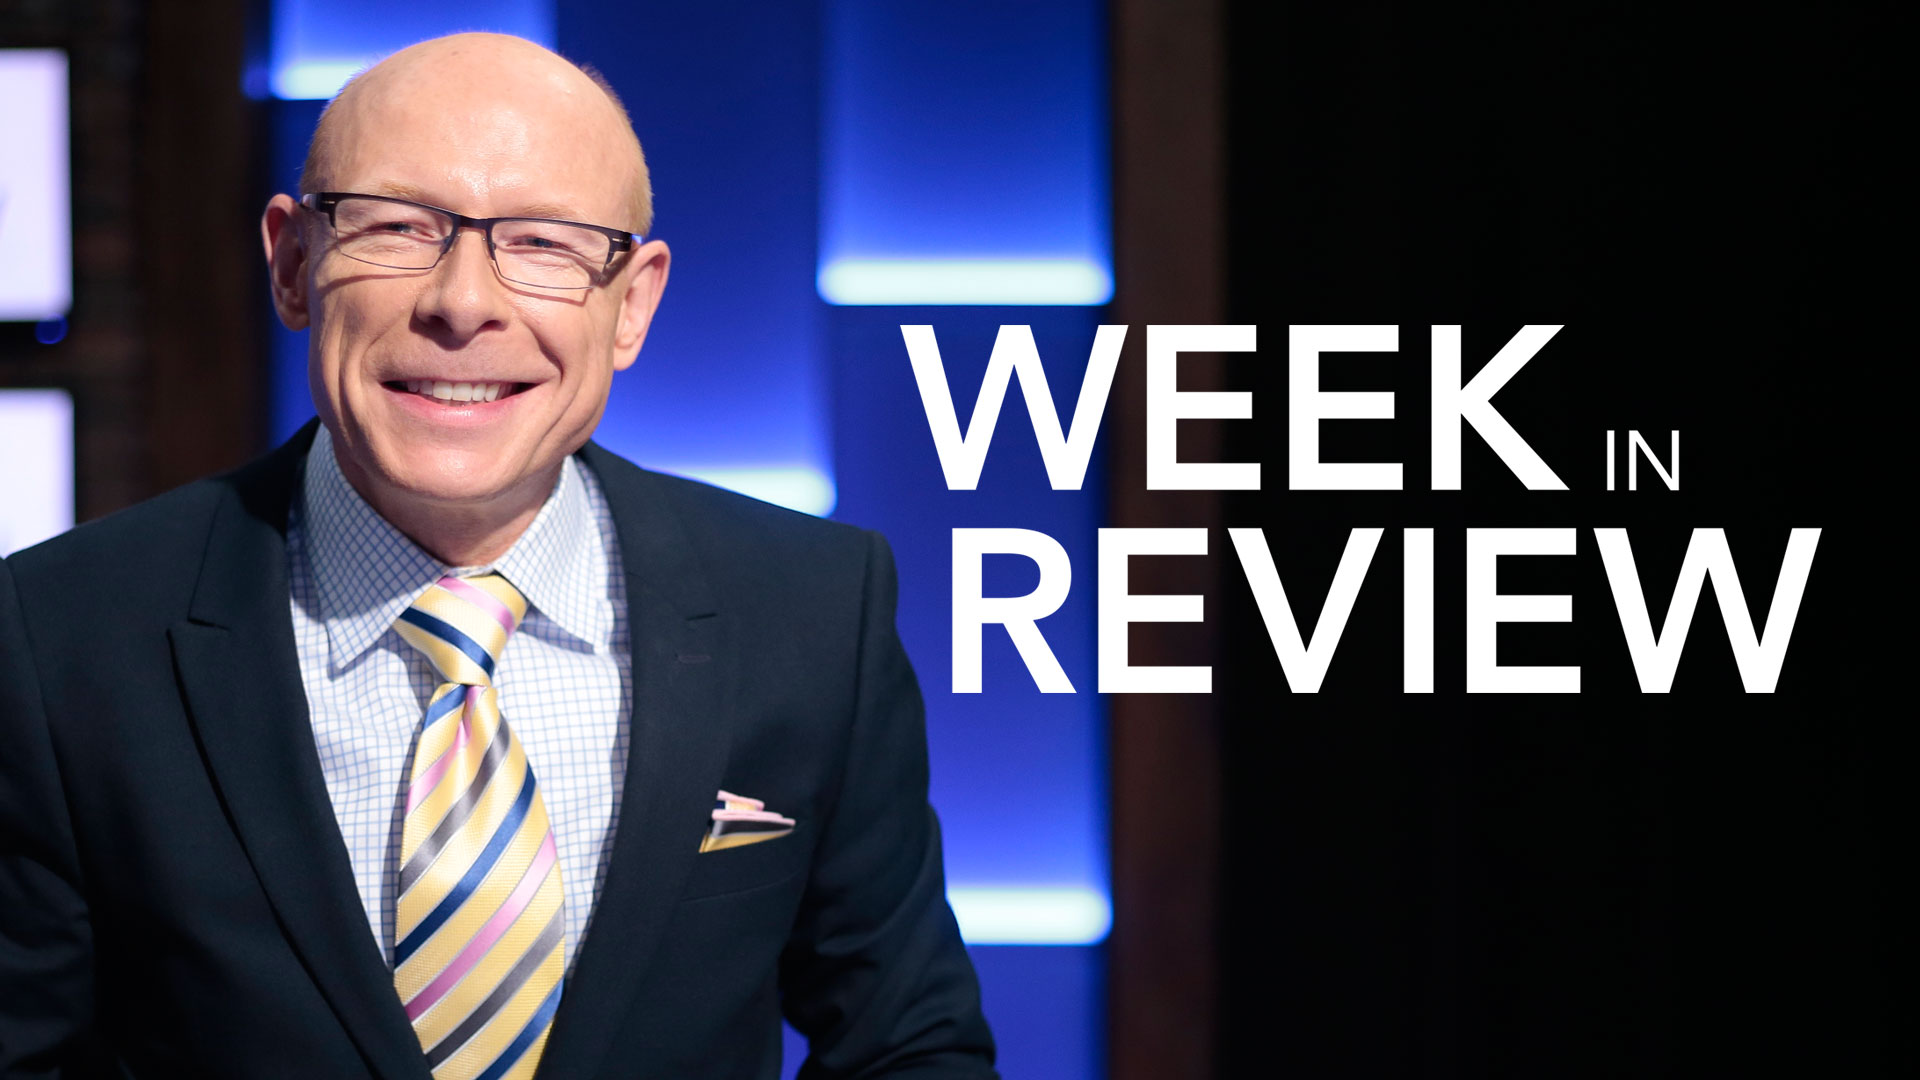 Week in Review | 7:30 p.m. Friday